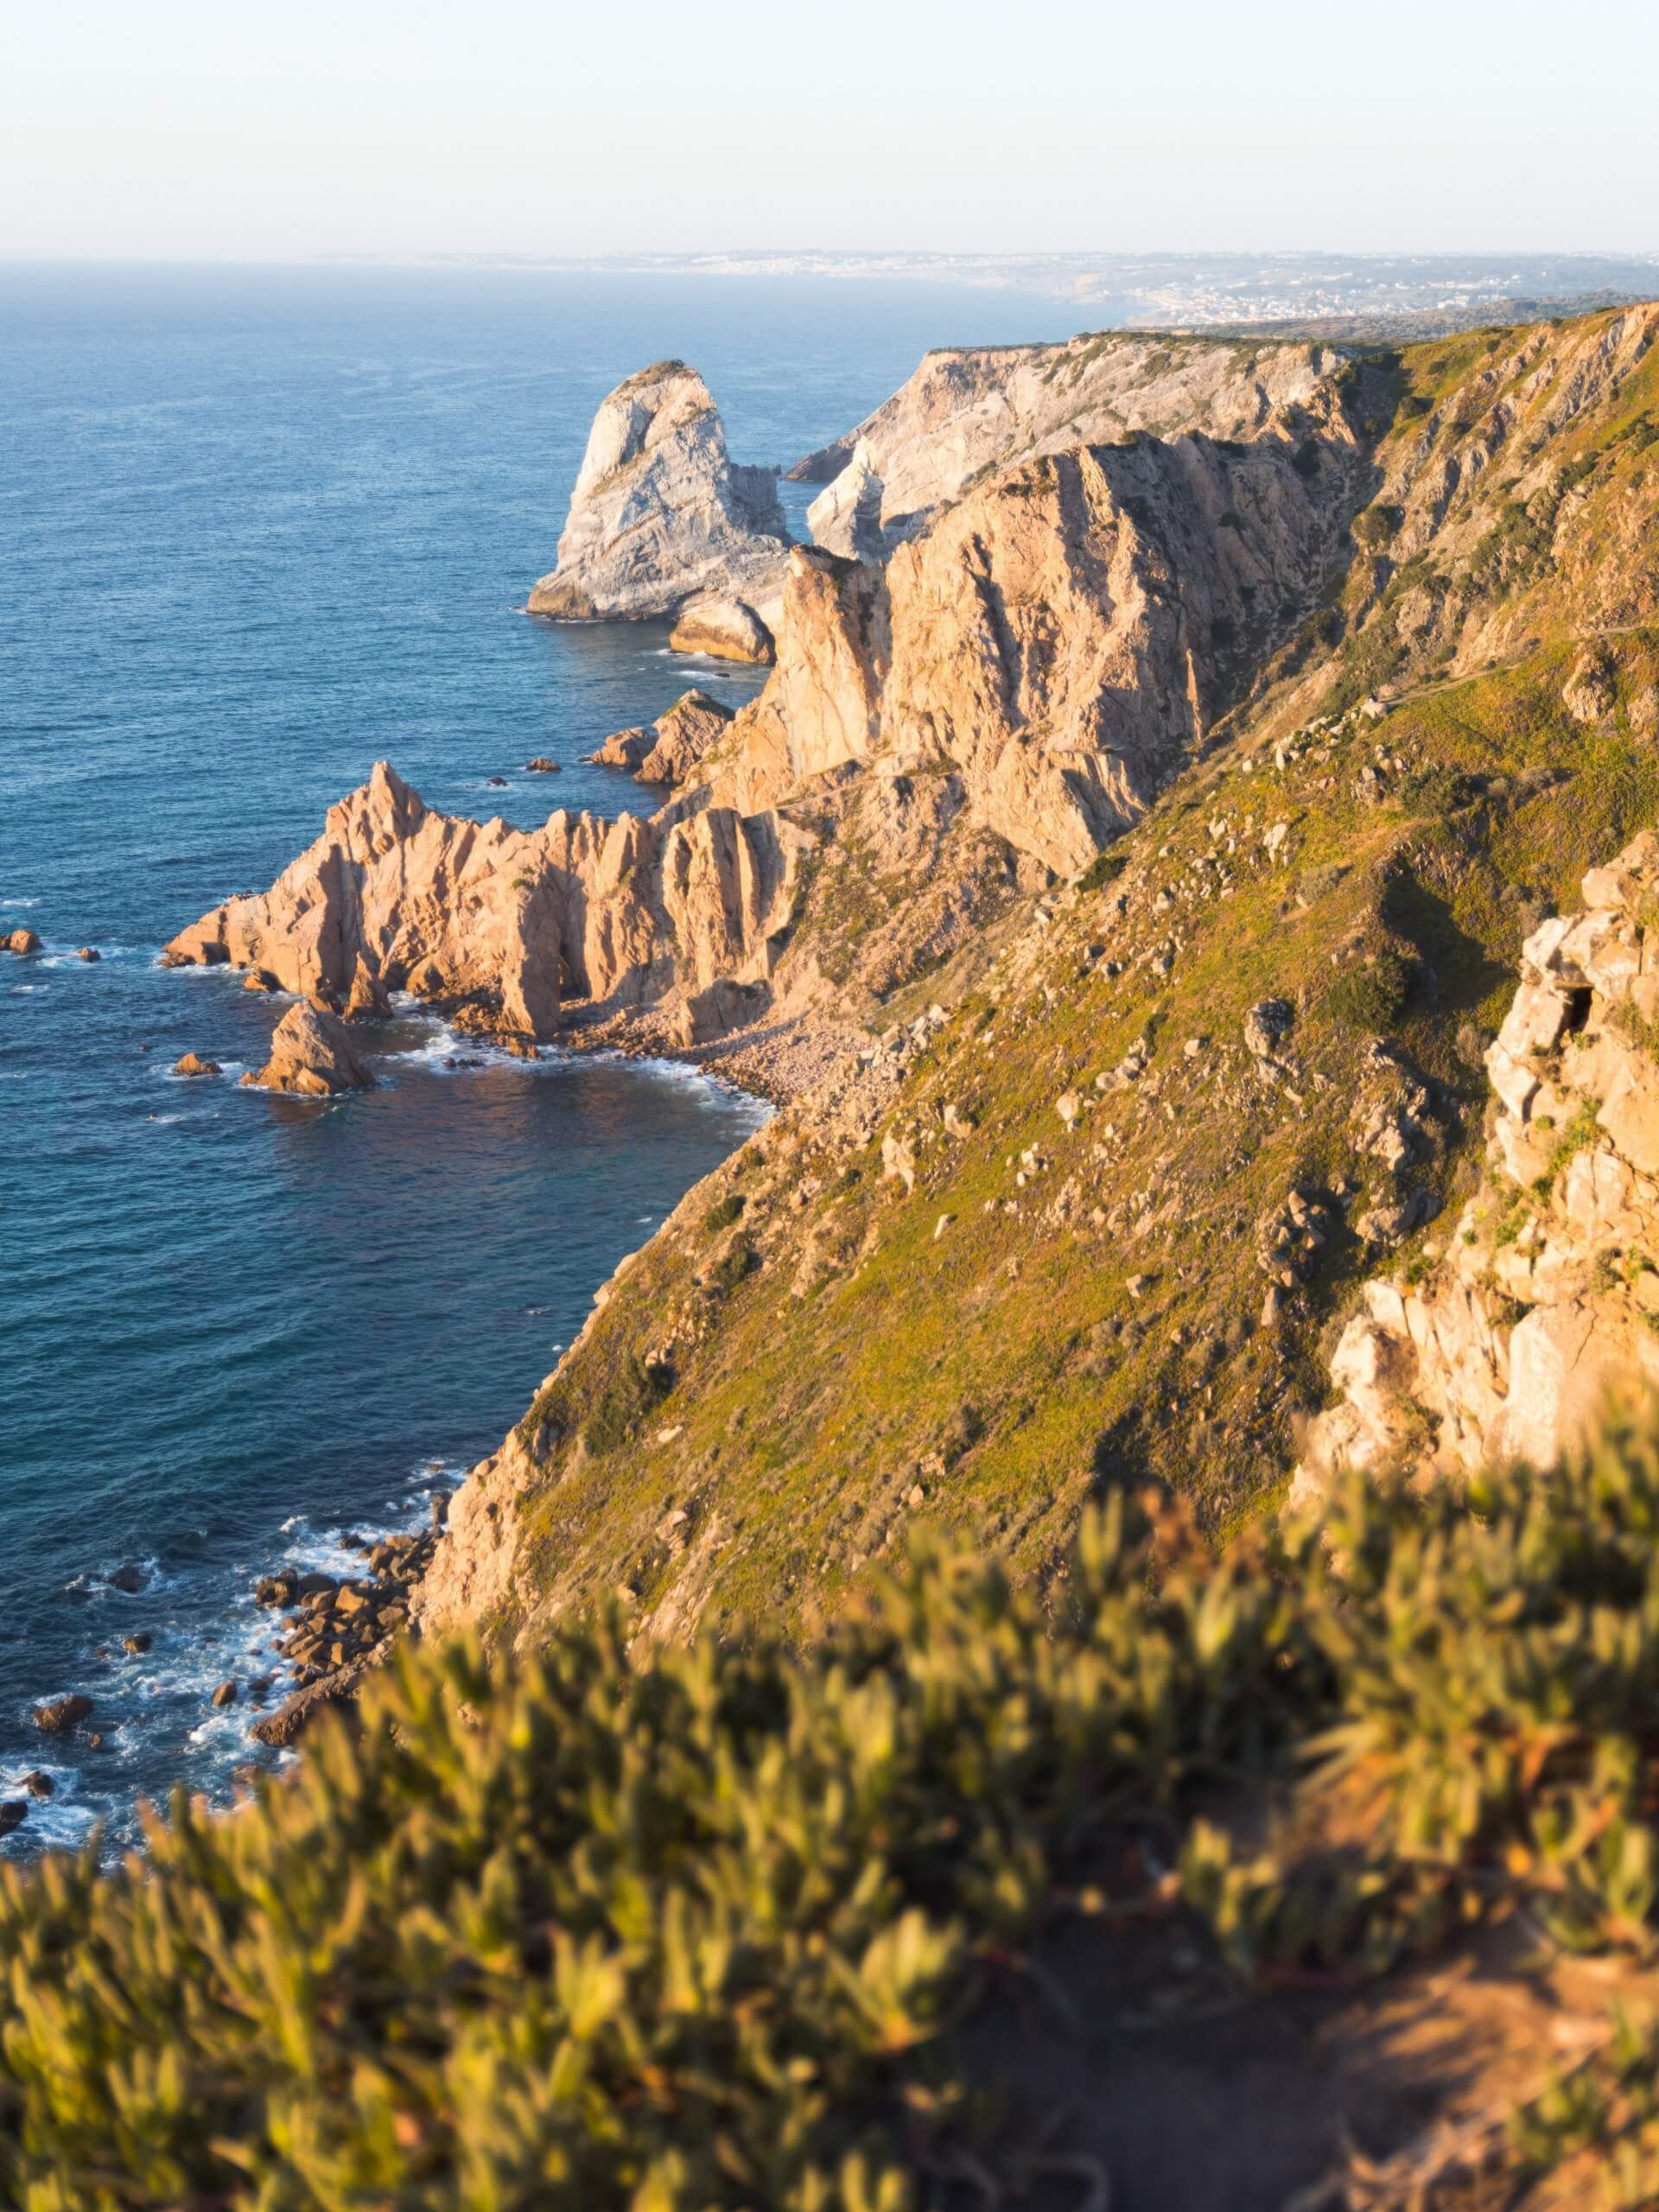 The best views from the amazing Cabo de Roca coastline in Portugal.